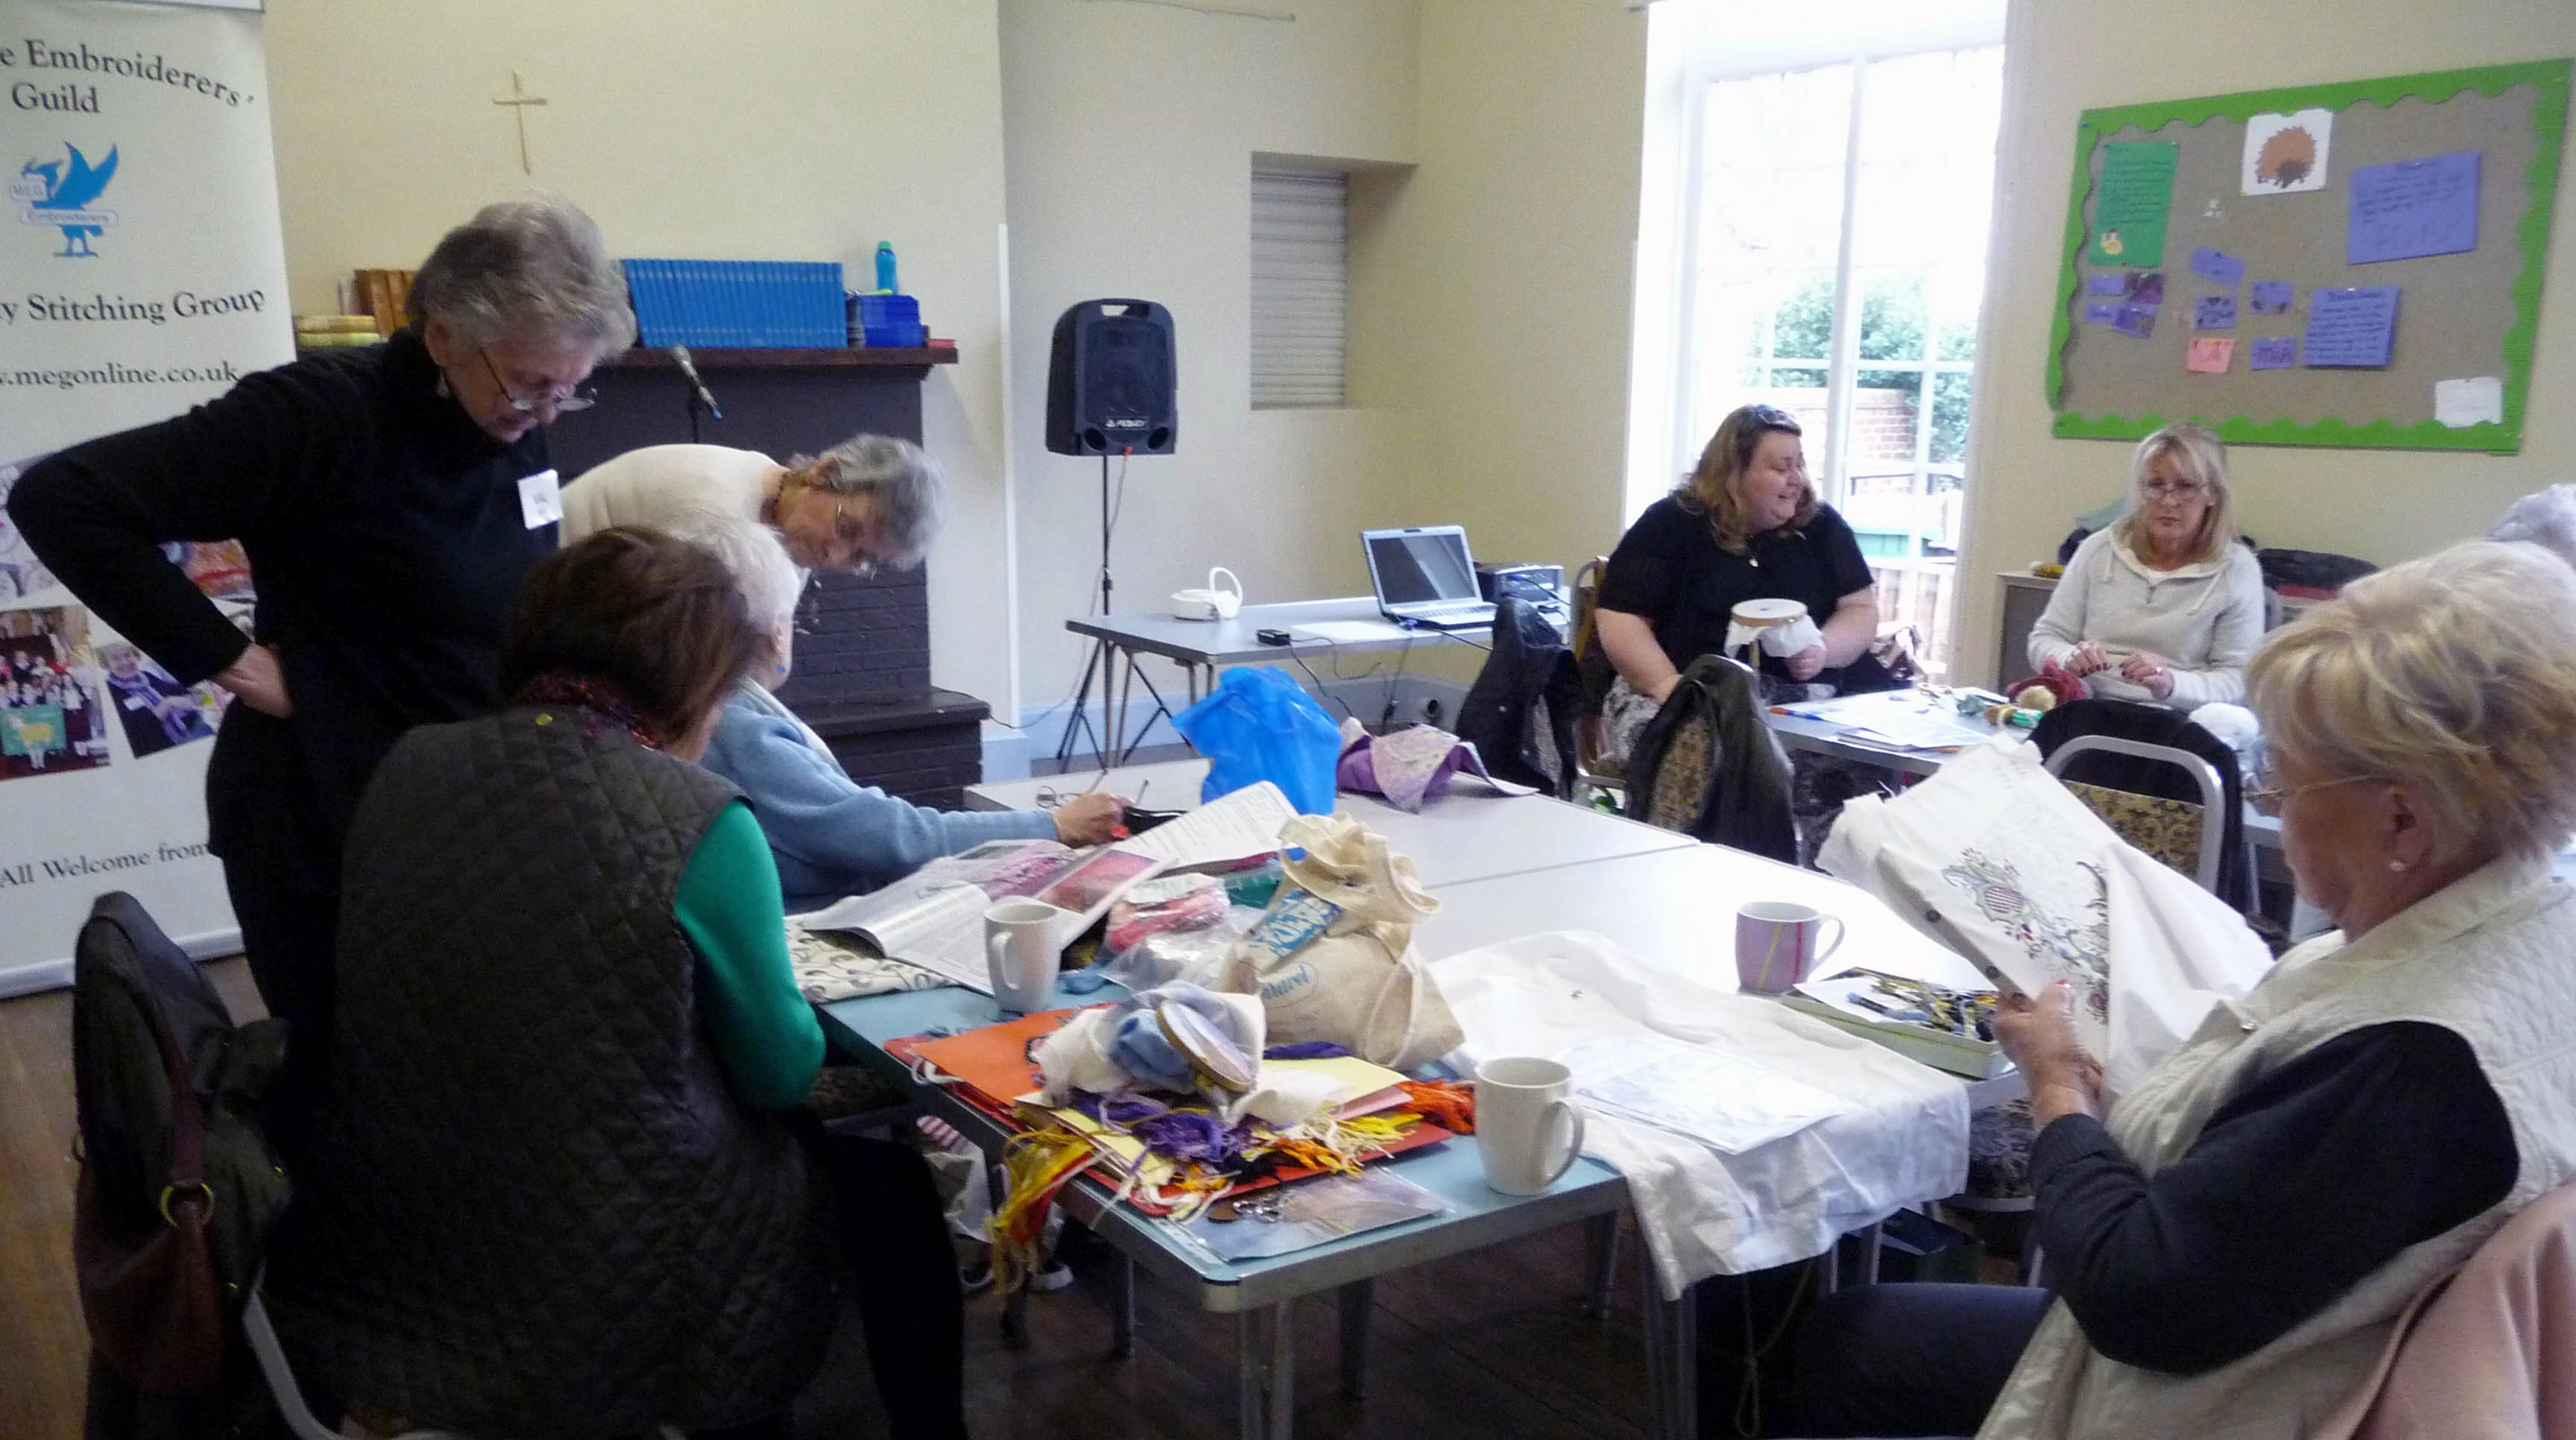 a lively 'Bring & Stitch' session before the MEG Talk